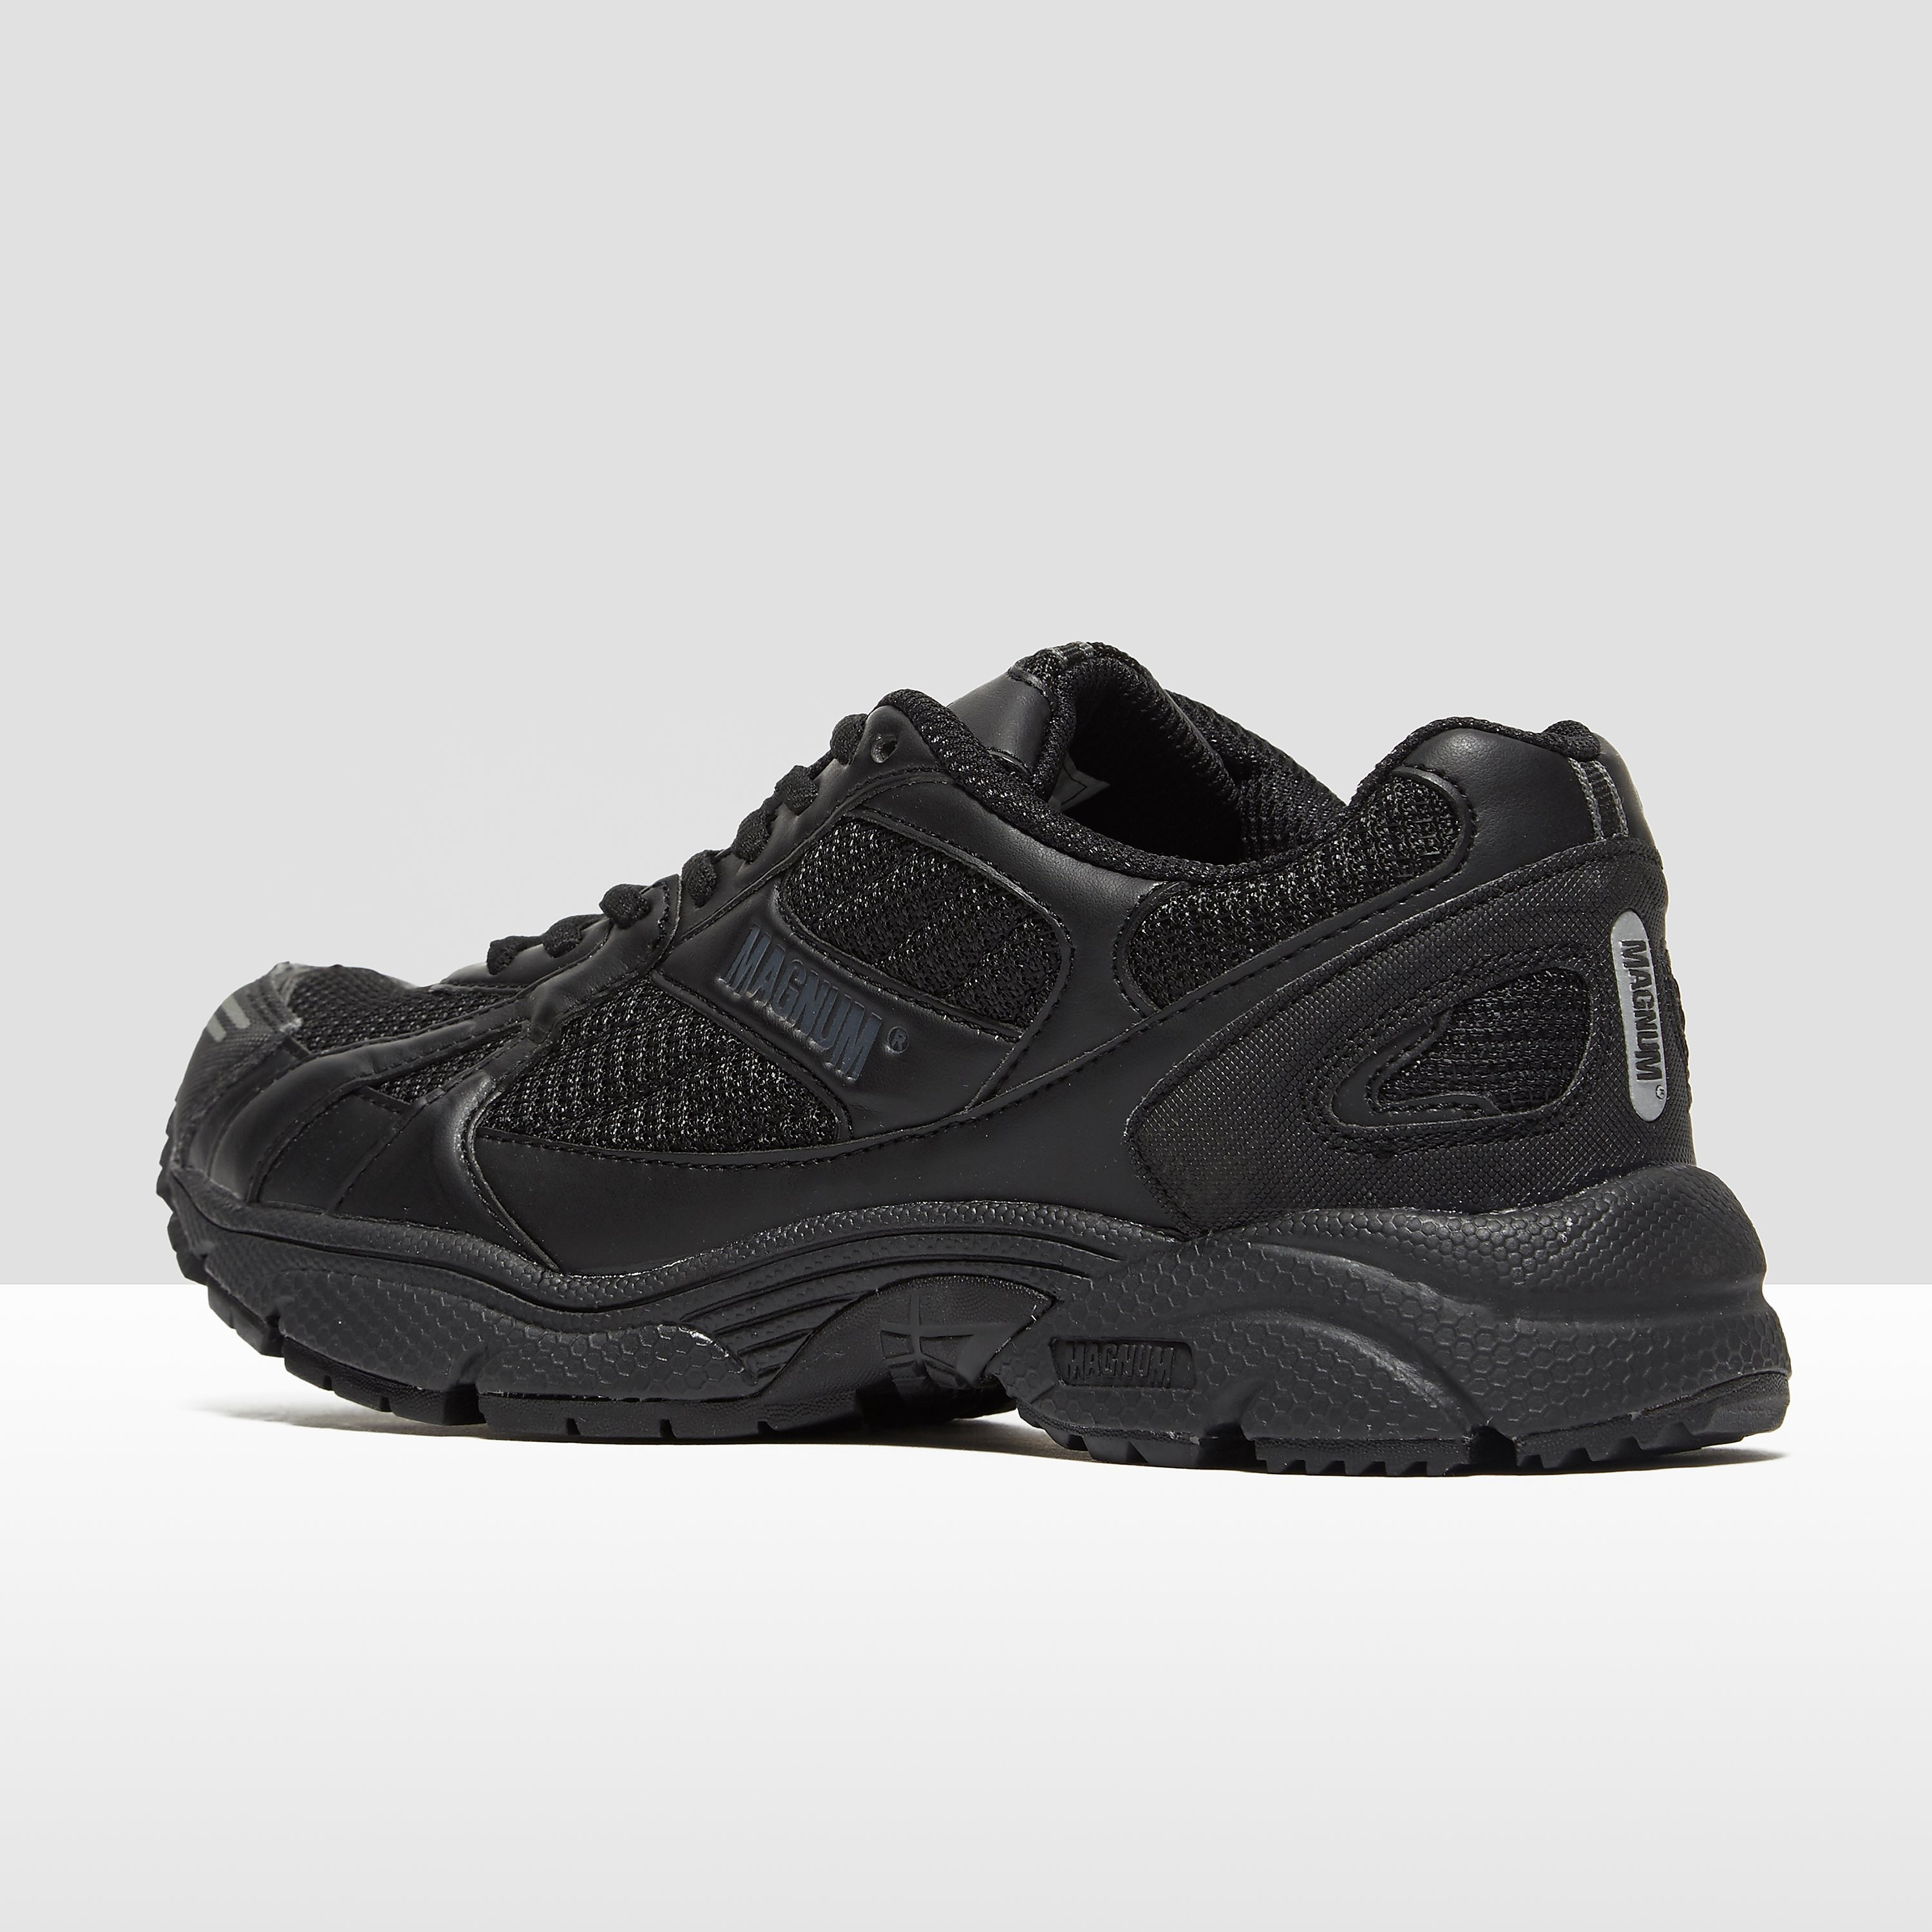 Magnum U.S.T. Men's Trainer